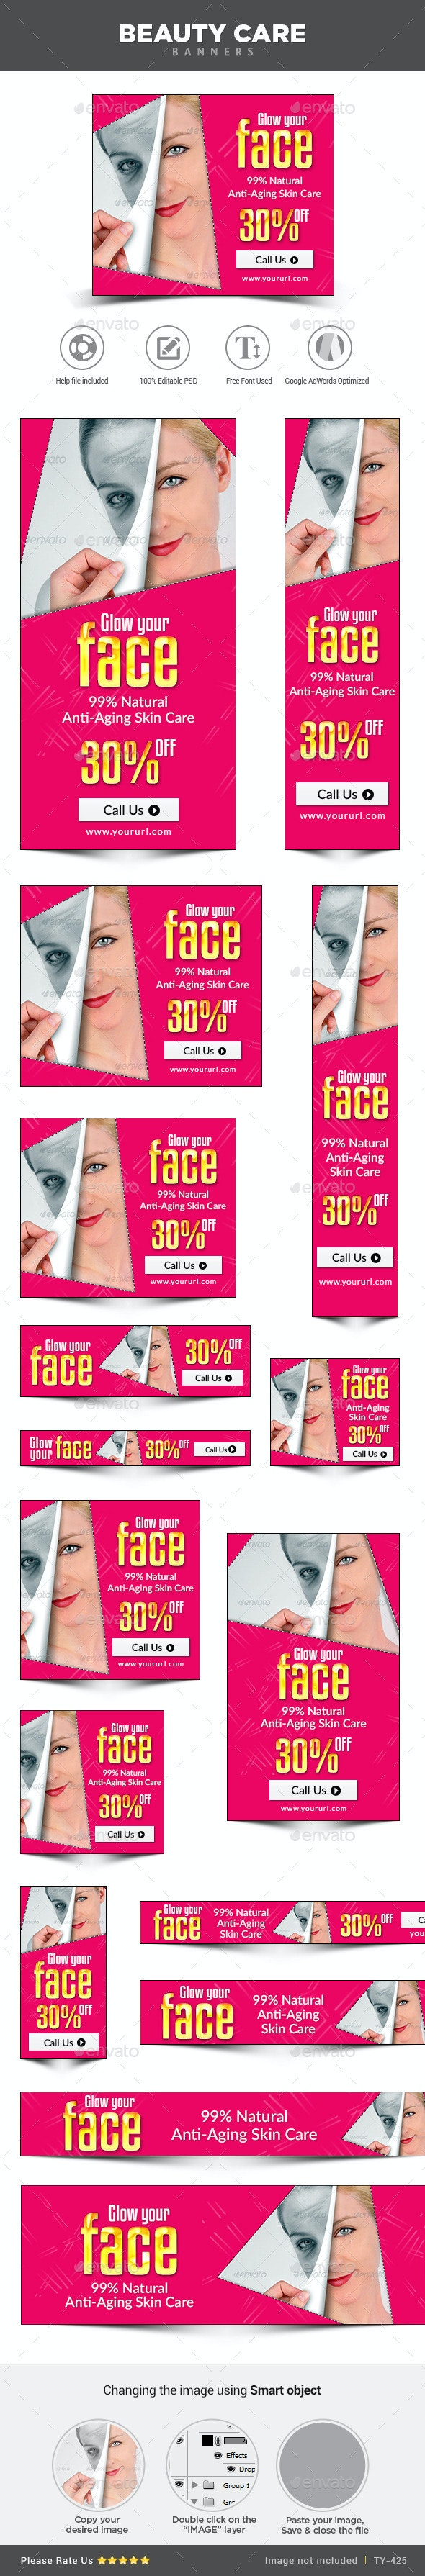 Beauty Care Banners - Banners & Ads Web Elements